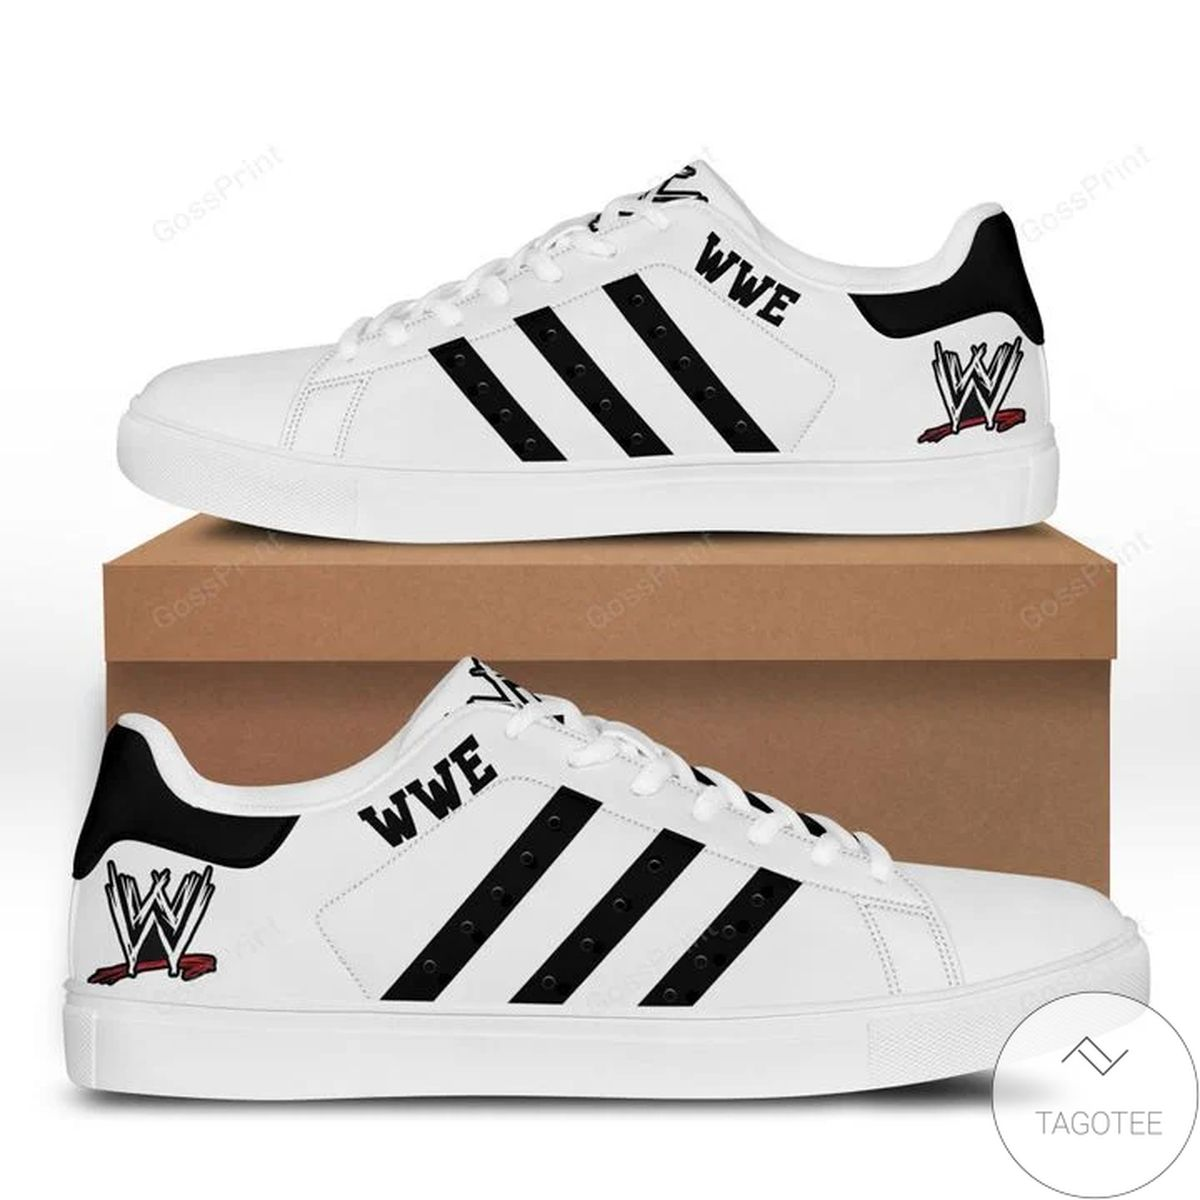 Wwe Stan Smith Shoes